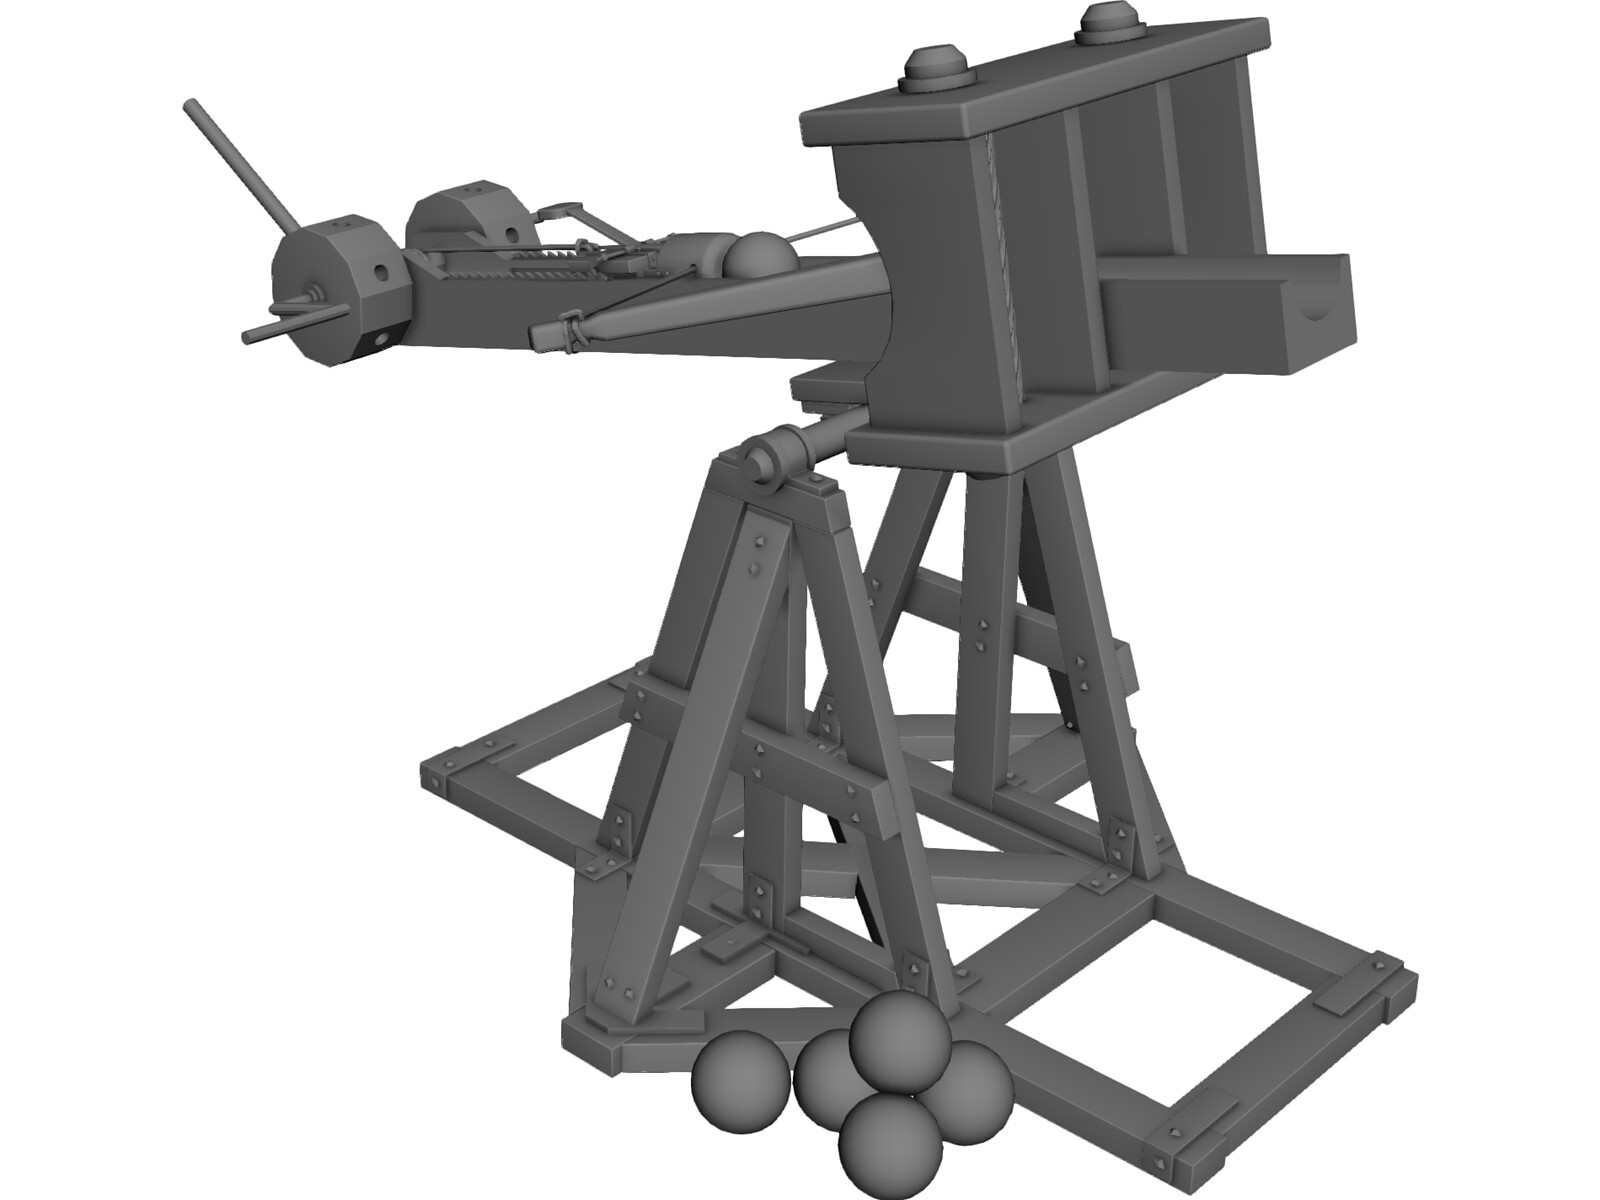 ... B1 as well Medieval Catapult Blueprints. on model catapult plans free